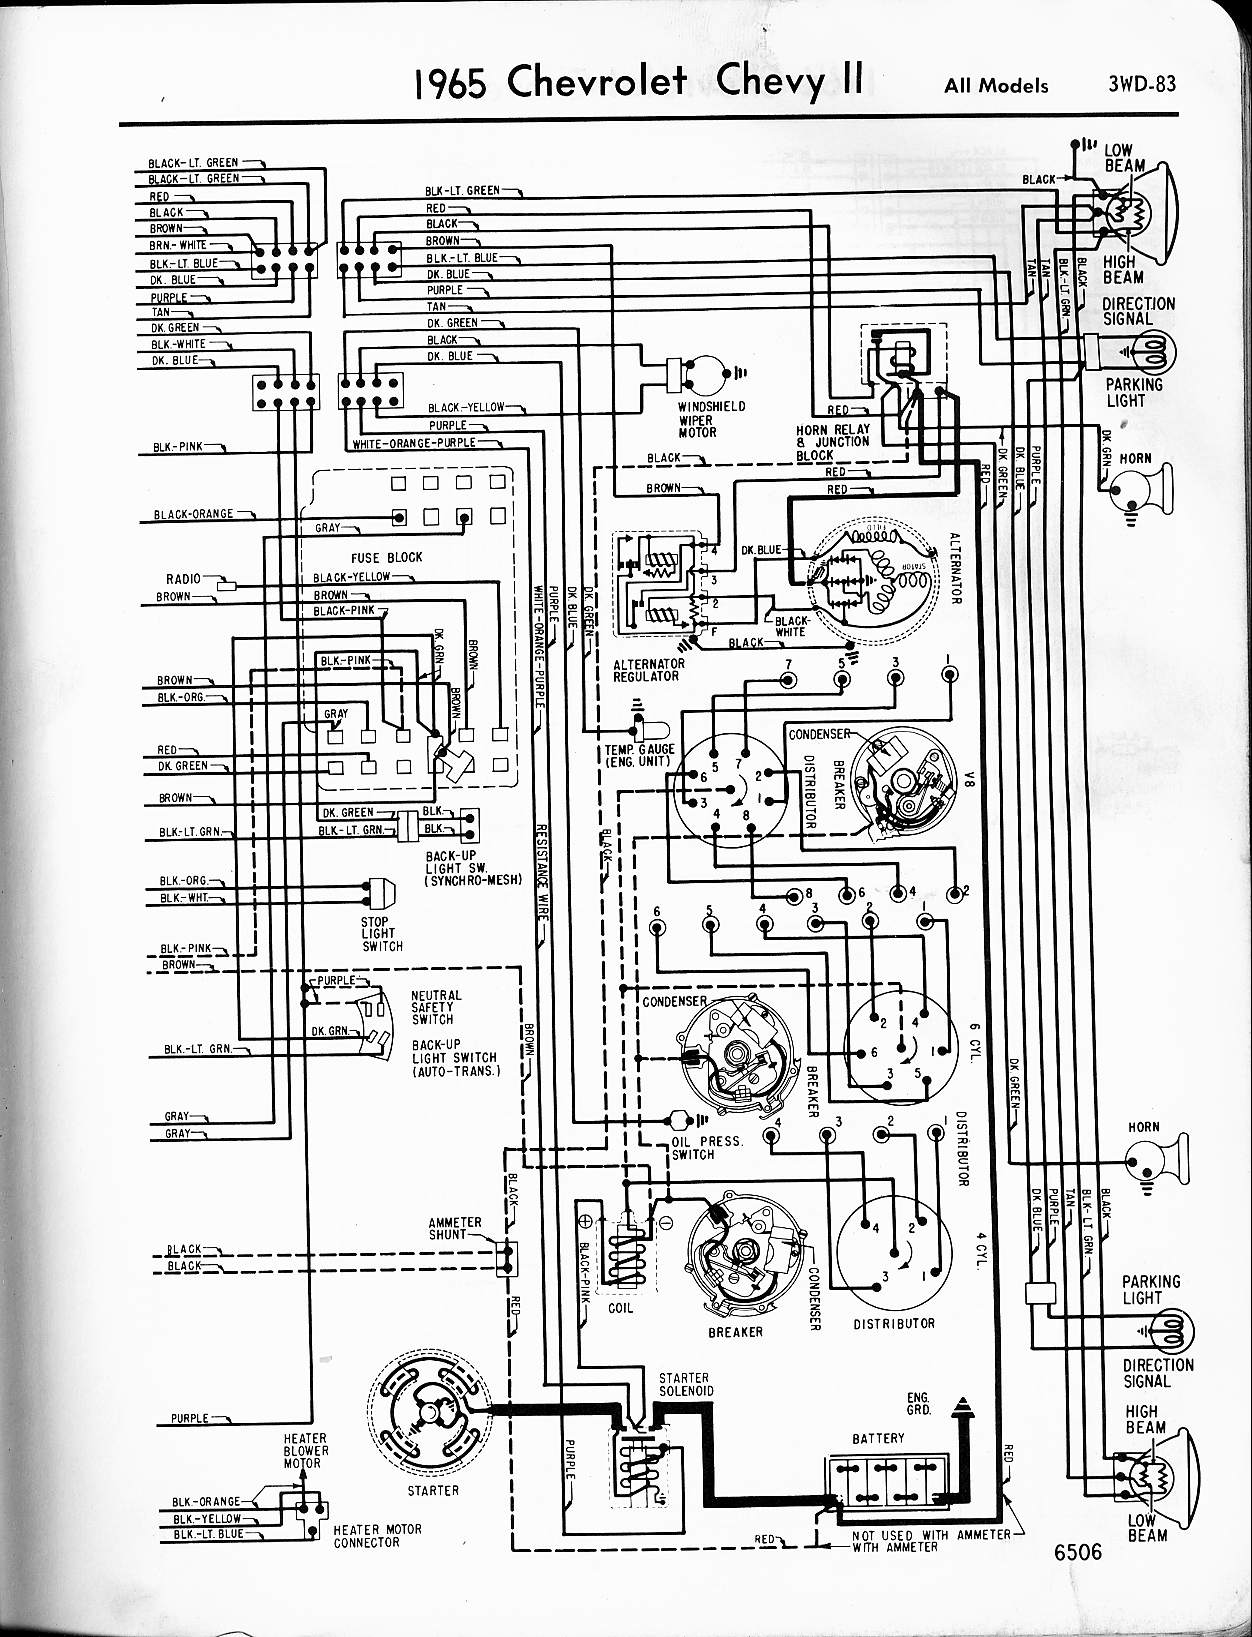 chevy diagrams rh wiring wizard com 1965 Mustang Wiring Harness Diagram Wiring Diagram 1980 Chrysler Cordoba